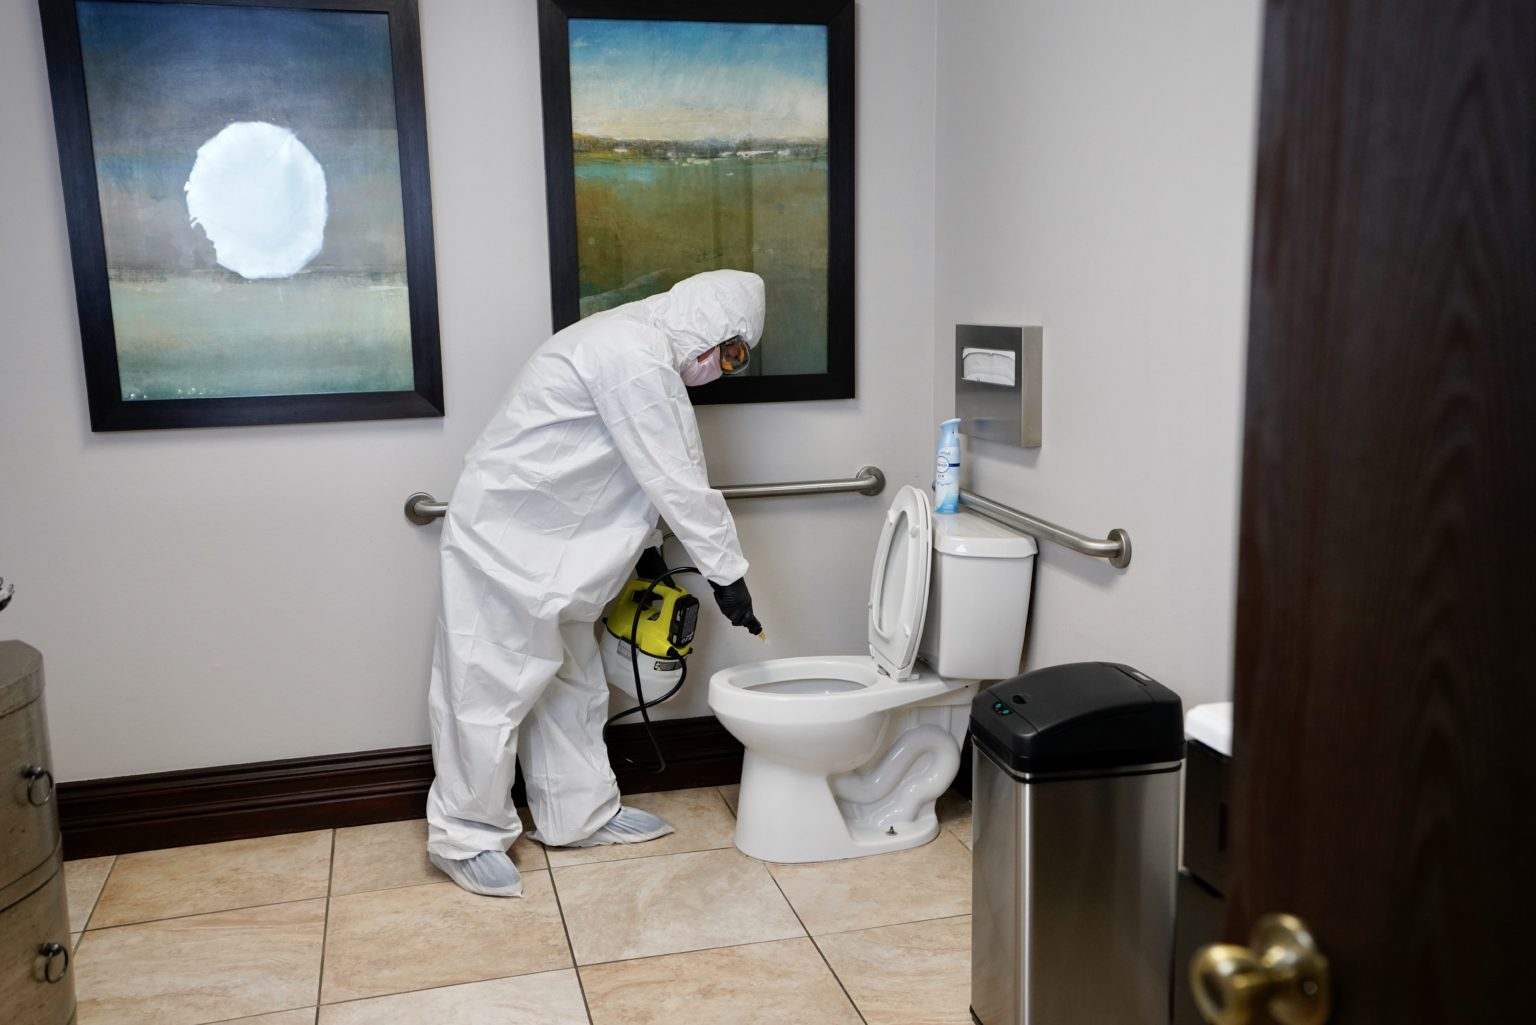 Job's disinfection of the facilities